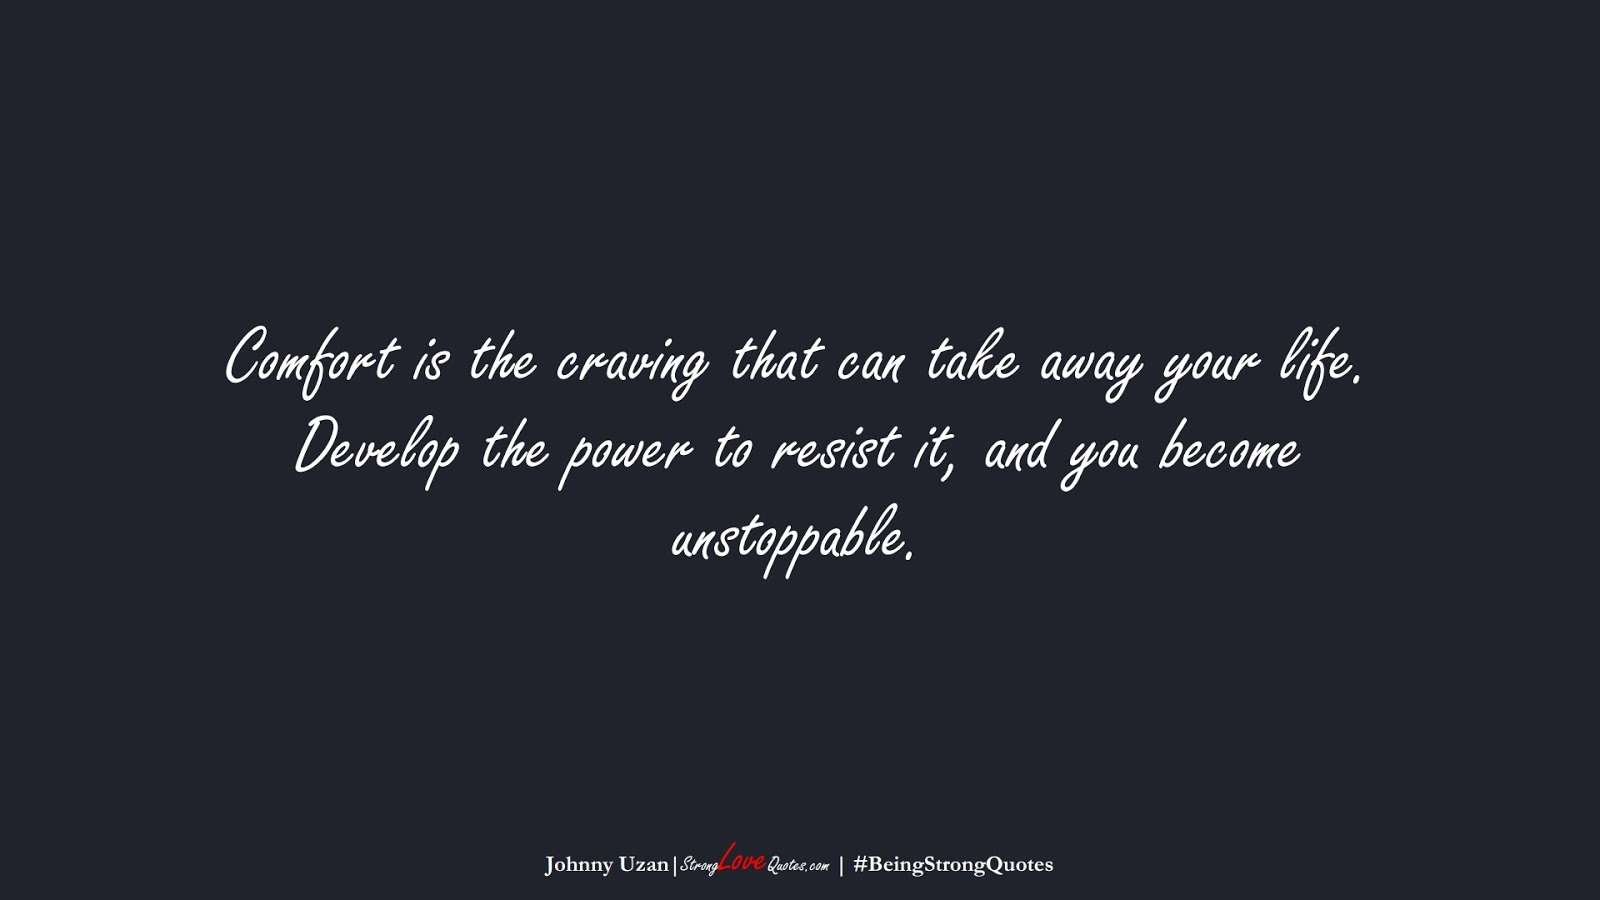 Comfort is the craving that can take away your life. Develop the power to resist it, and you become unstoppable. (Johnny Uzan);  #BeingStrongQuotes